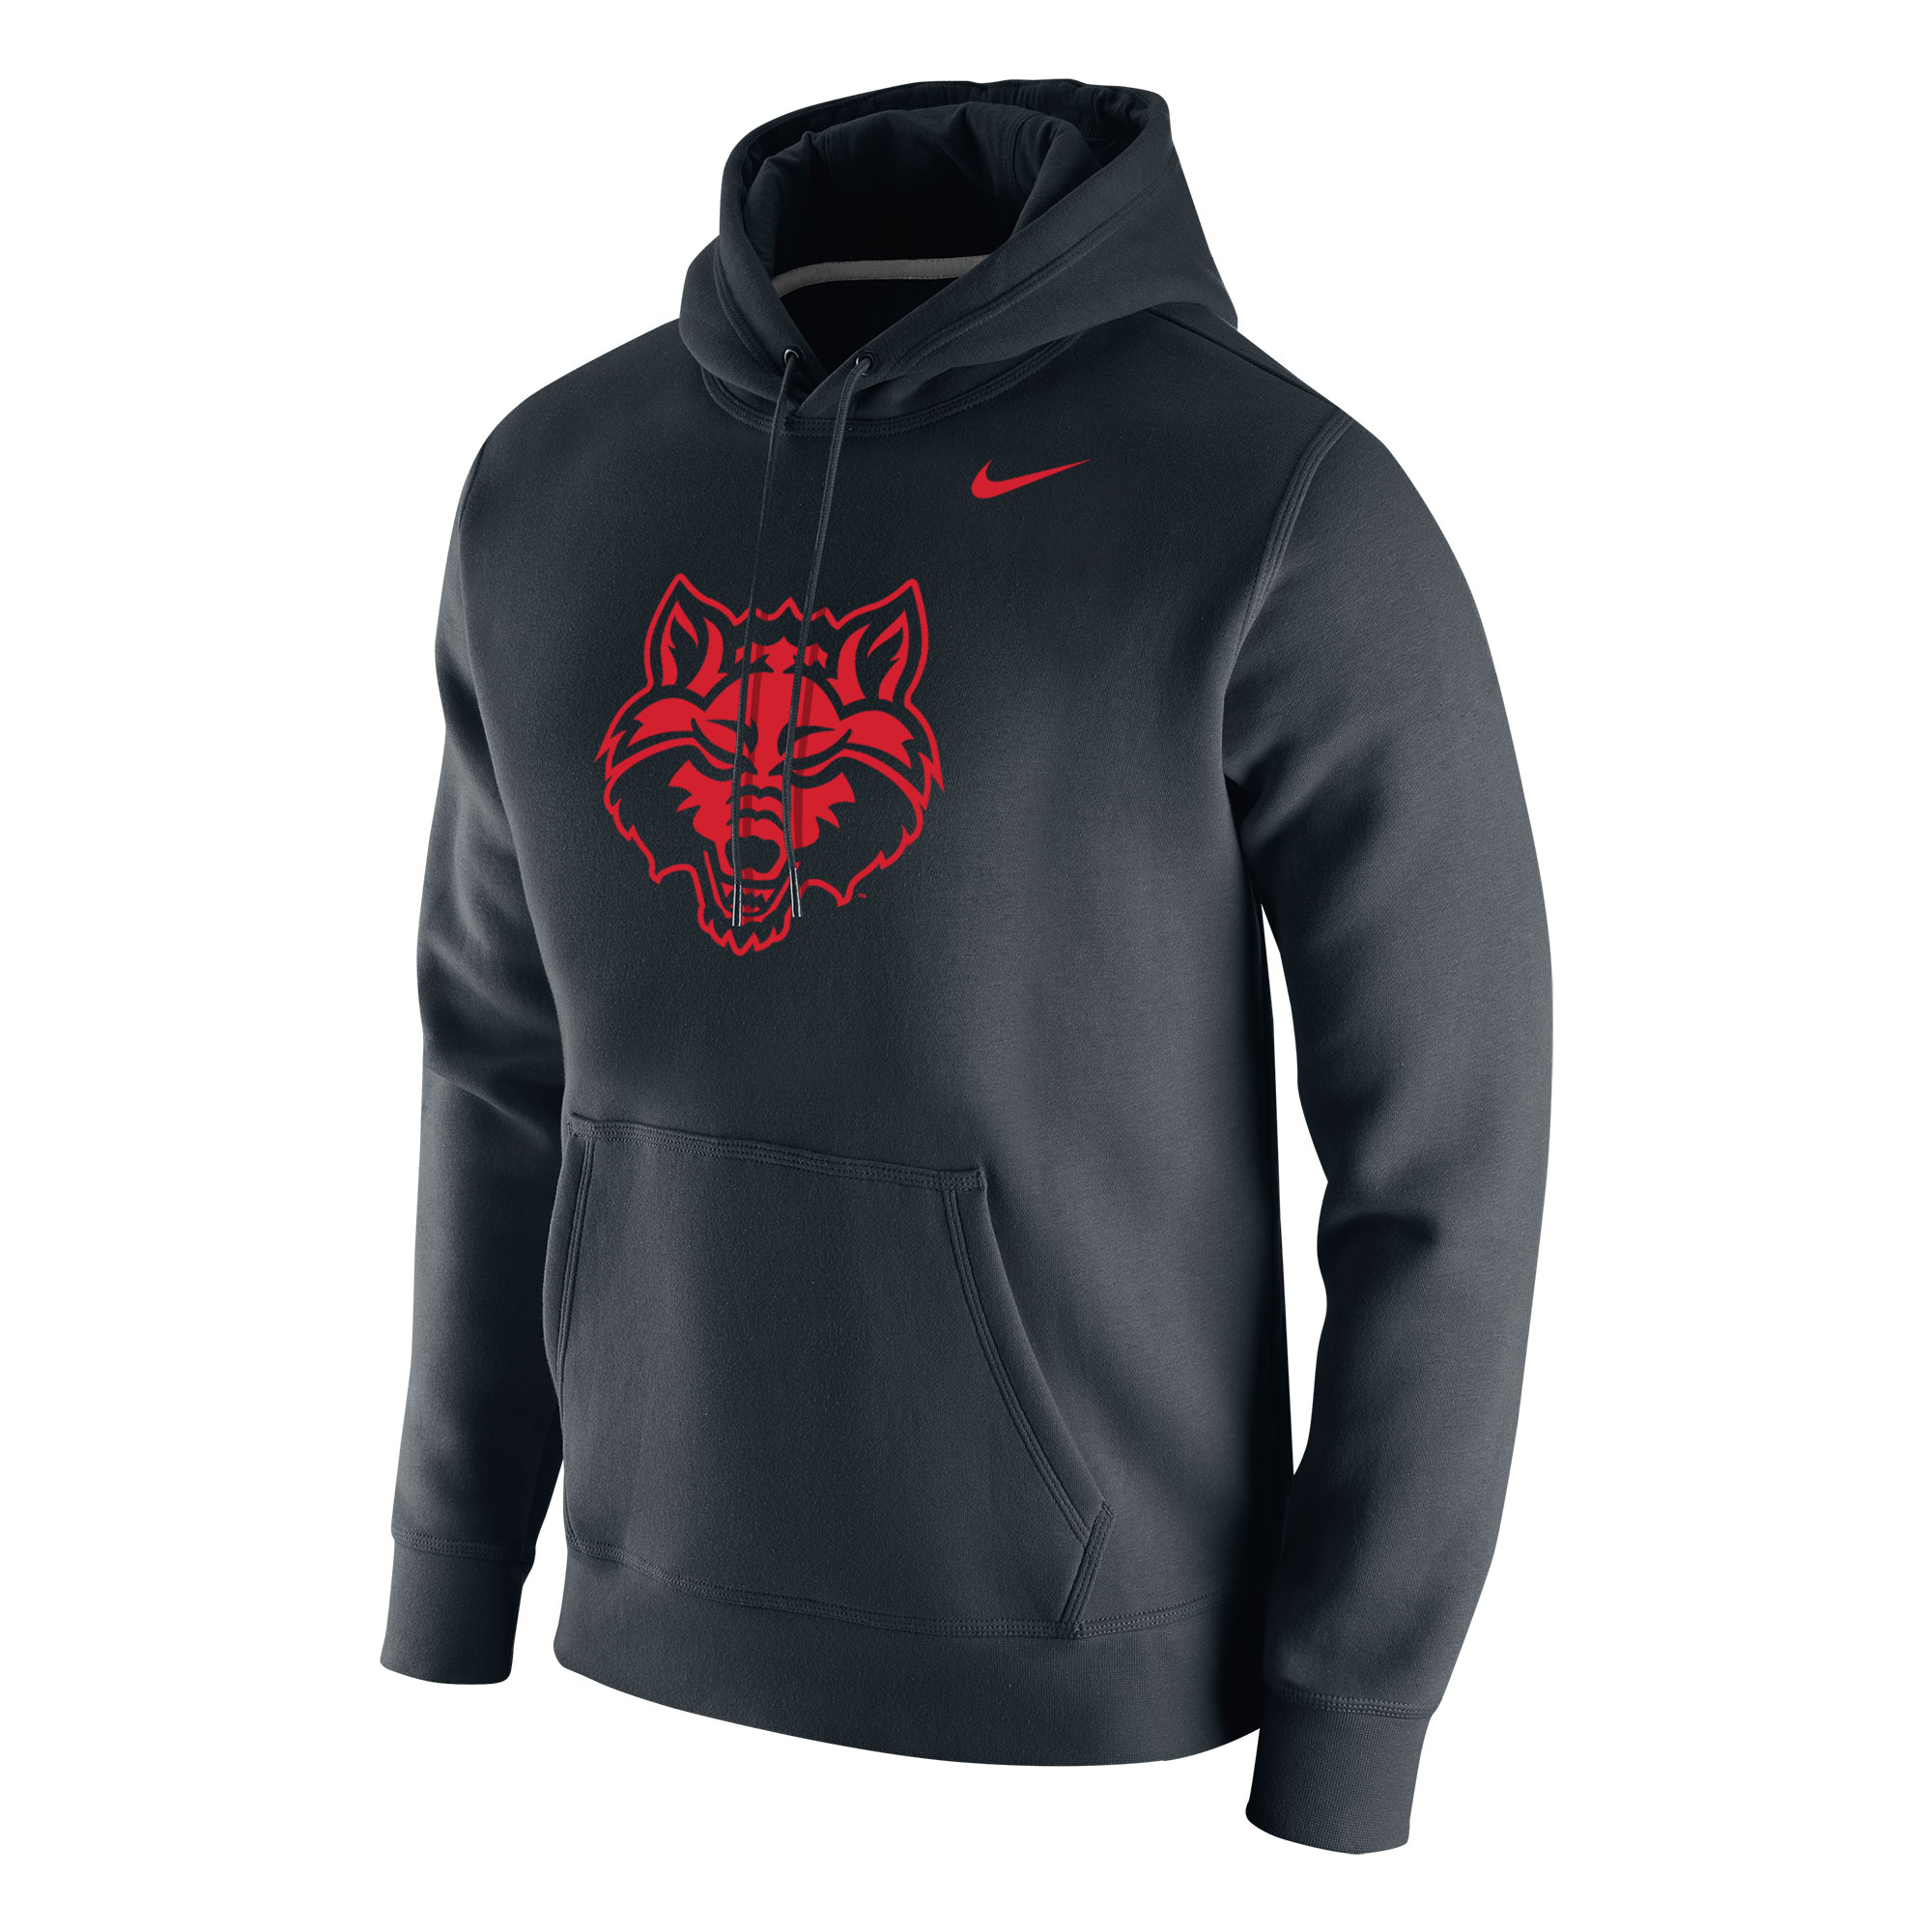 Arkansas State Club Fleece PO Hoody